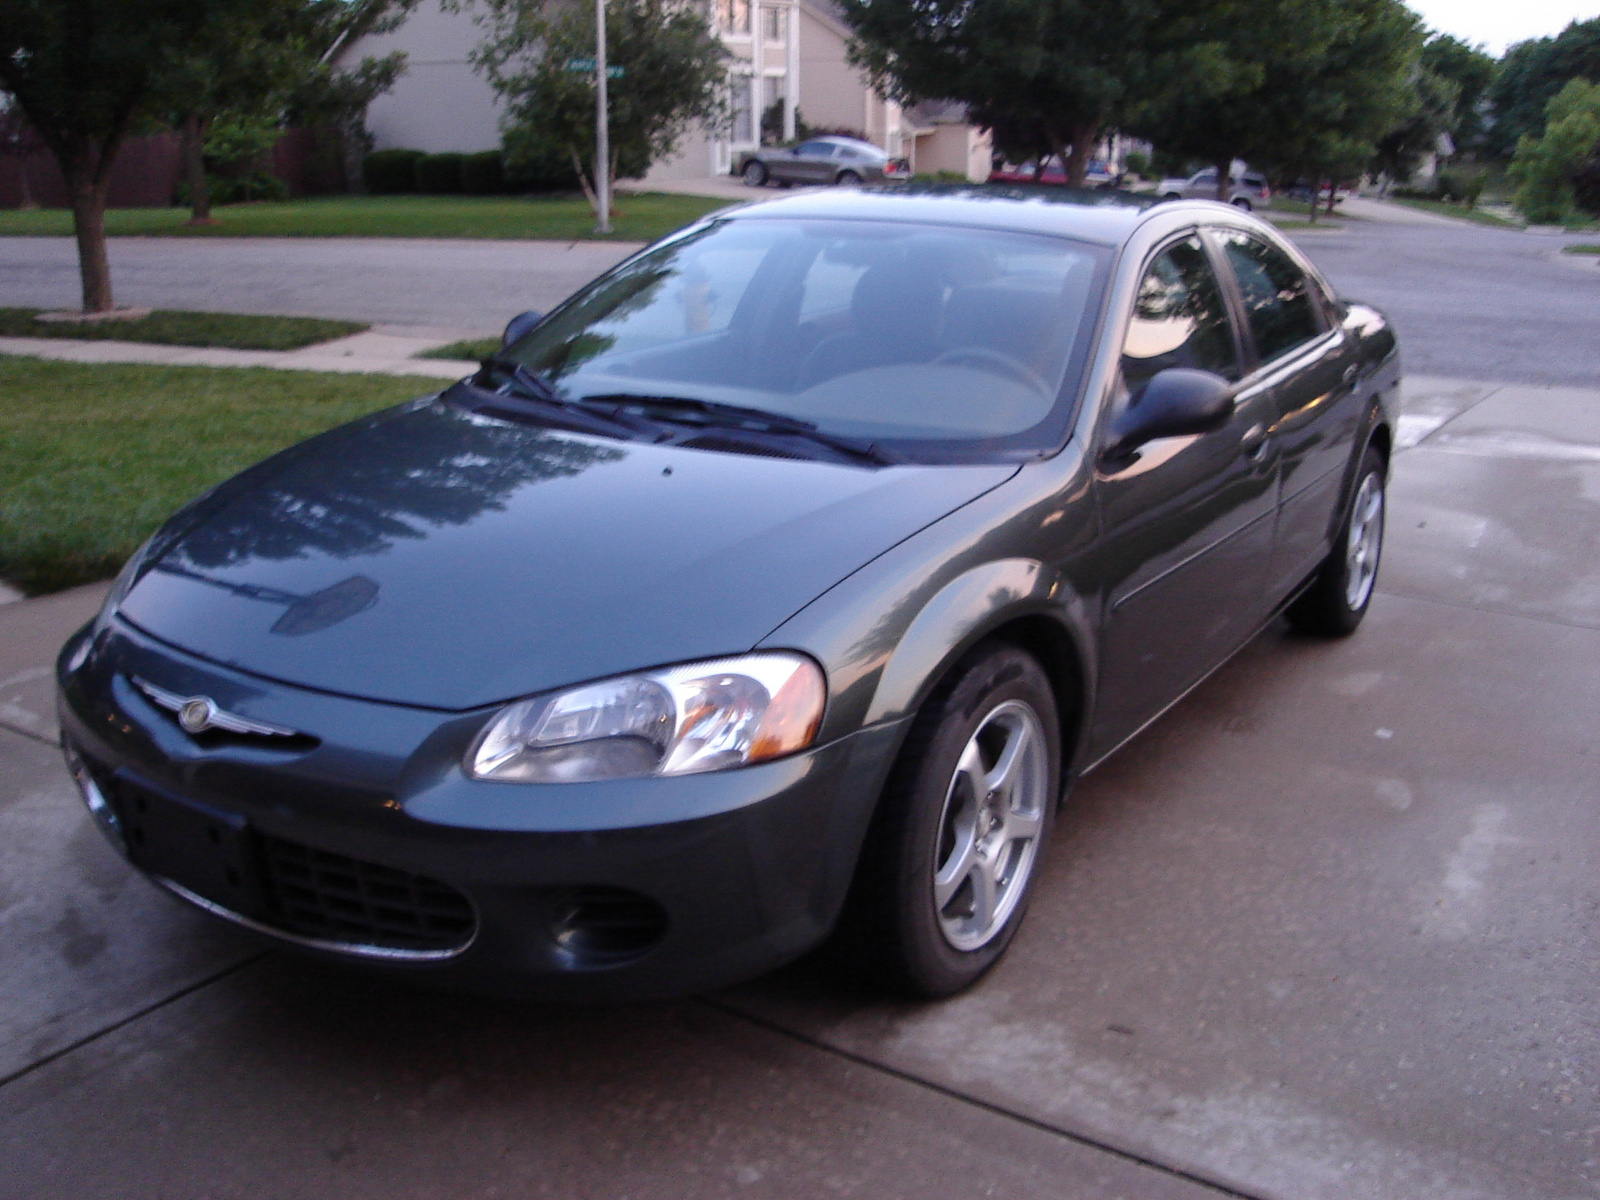 2002 Chrysler Sebring LX picture